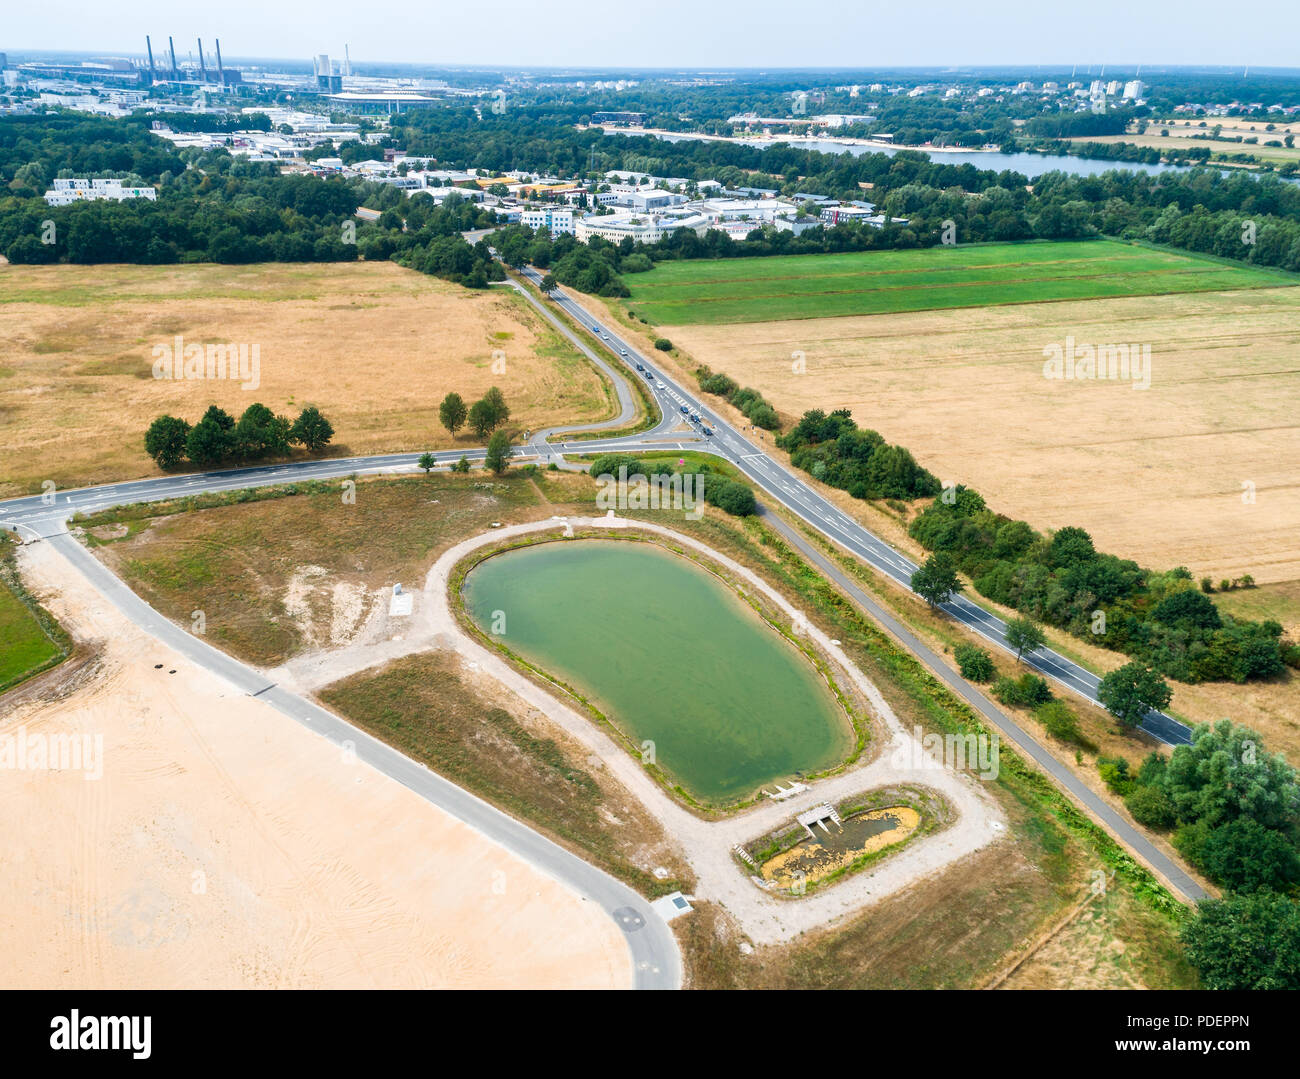 Aerial view of a rain retention basin at the edge of a new development, taken oblique. - Stock Image